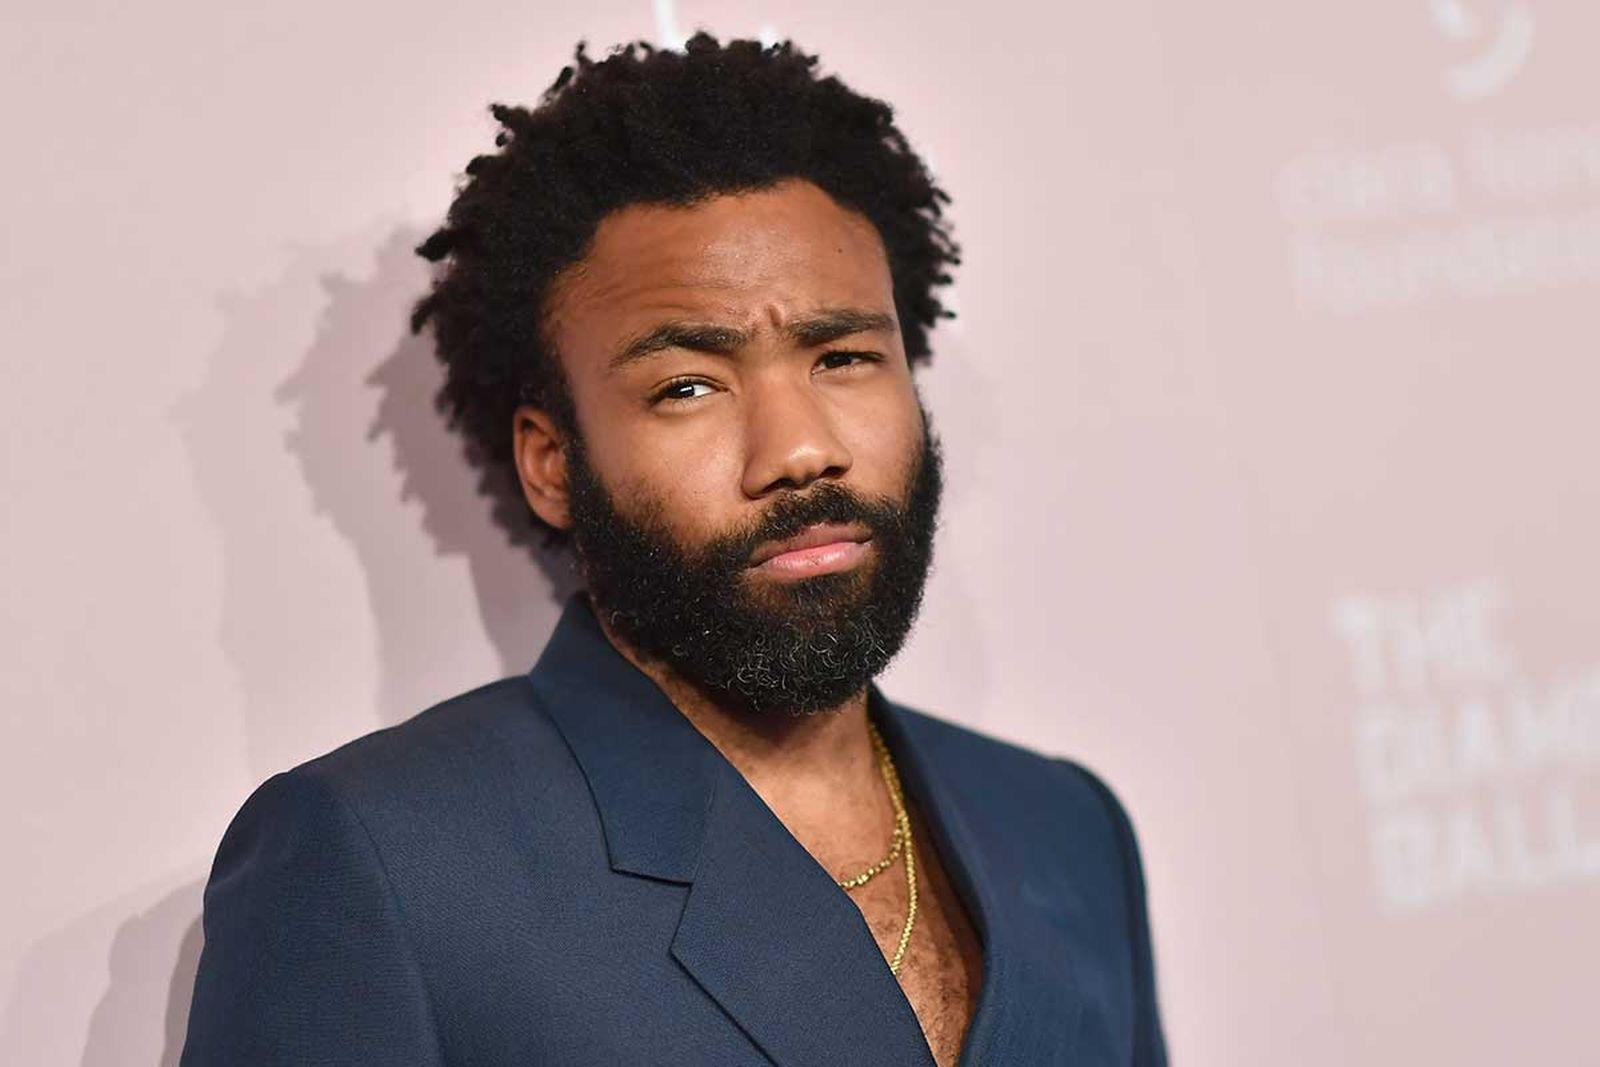 Donald Glover at Rihanna's Annual Diamond Ball